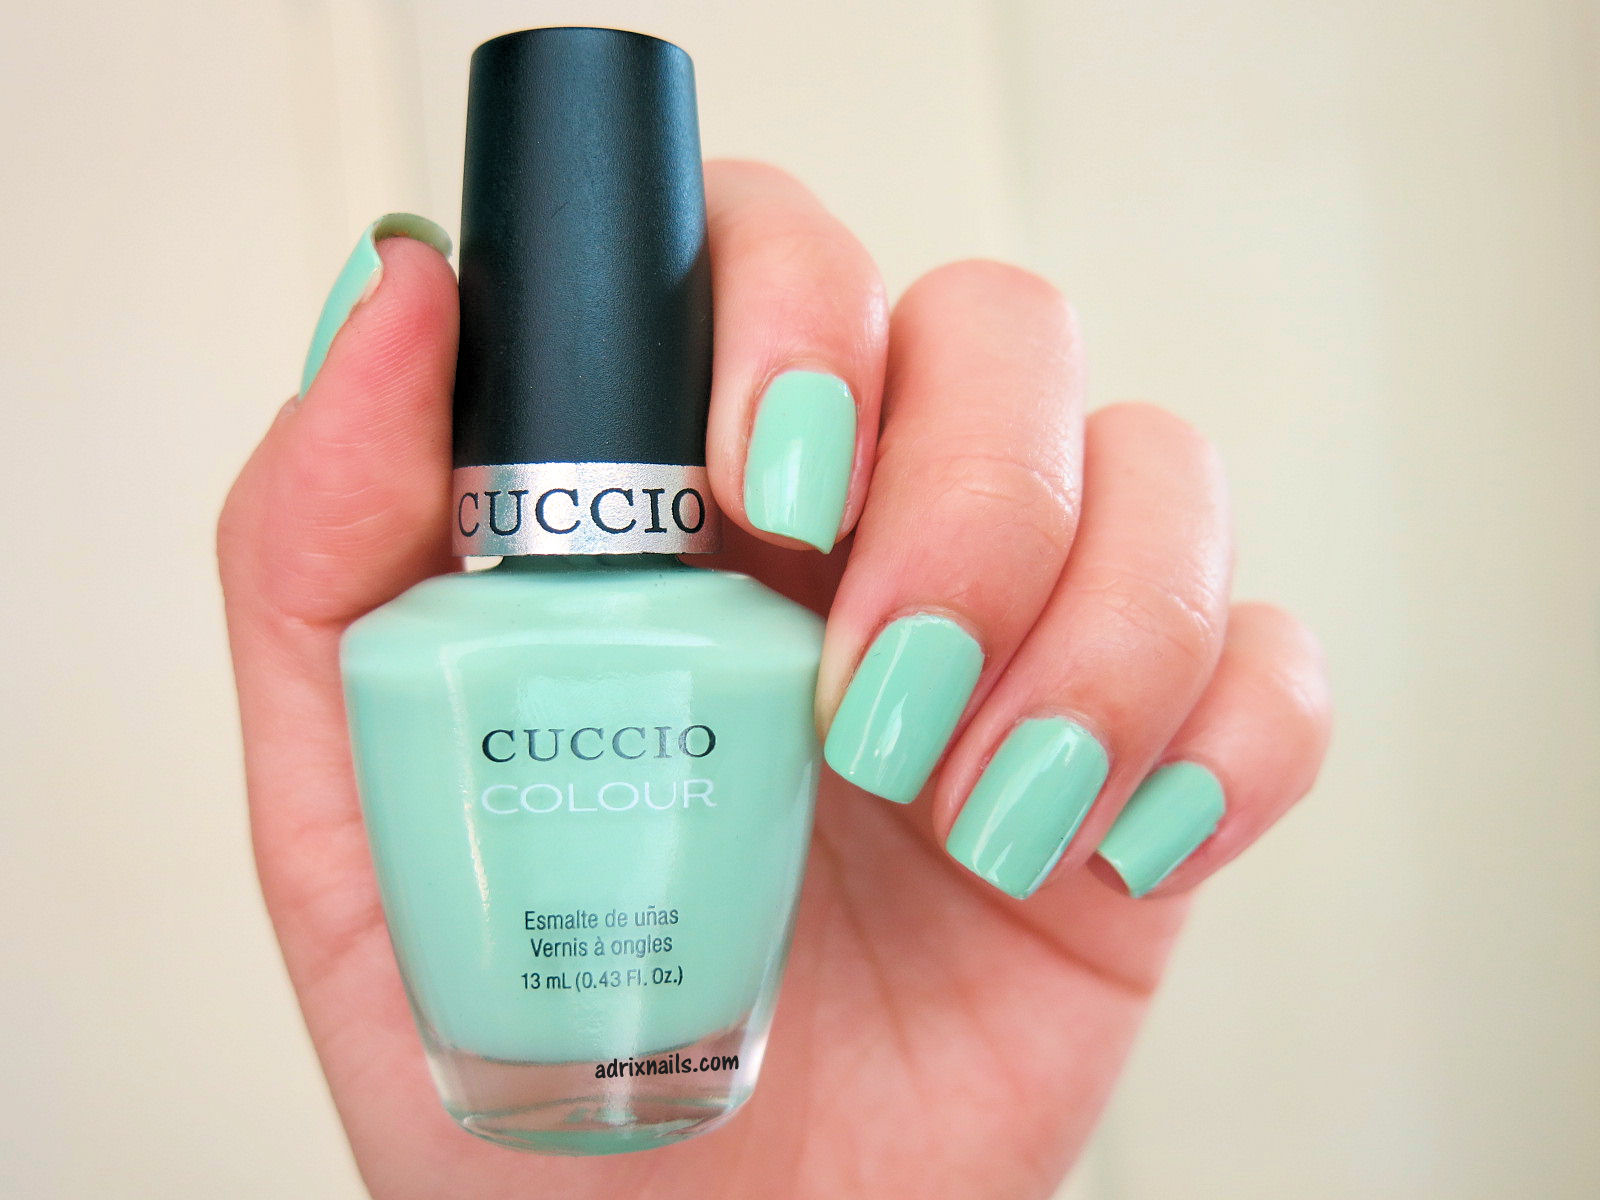 Colores: Cuccio Colour -Mint Condition- | Adrix Nails: Uñas ...